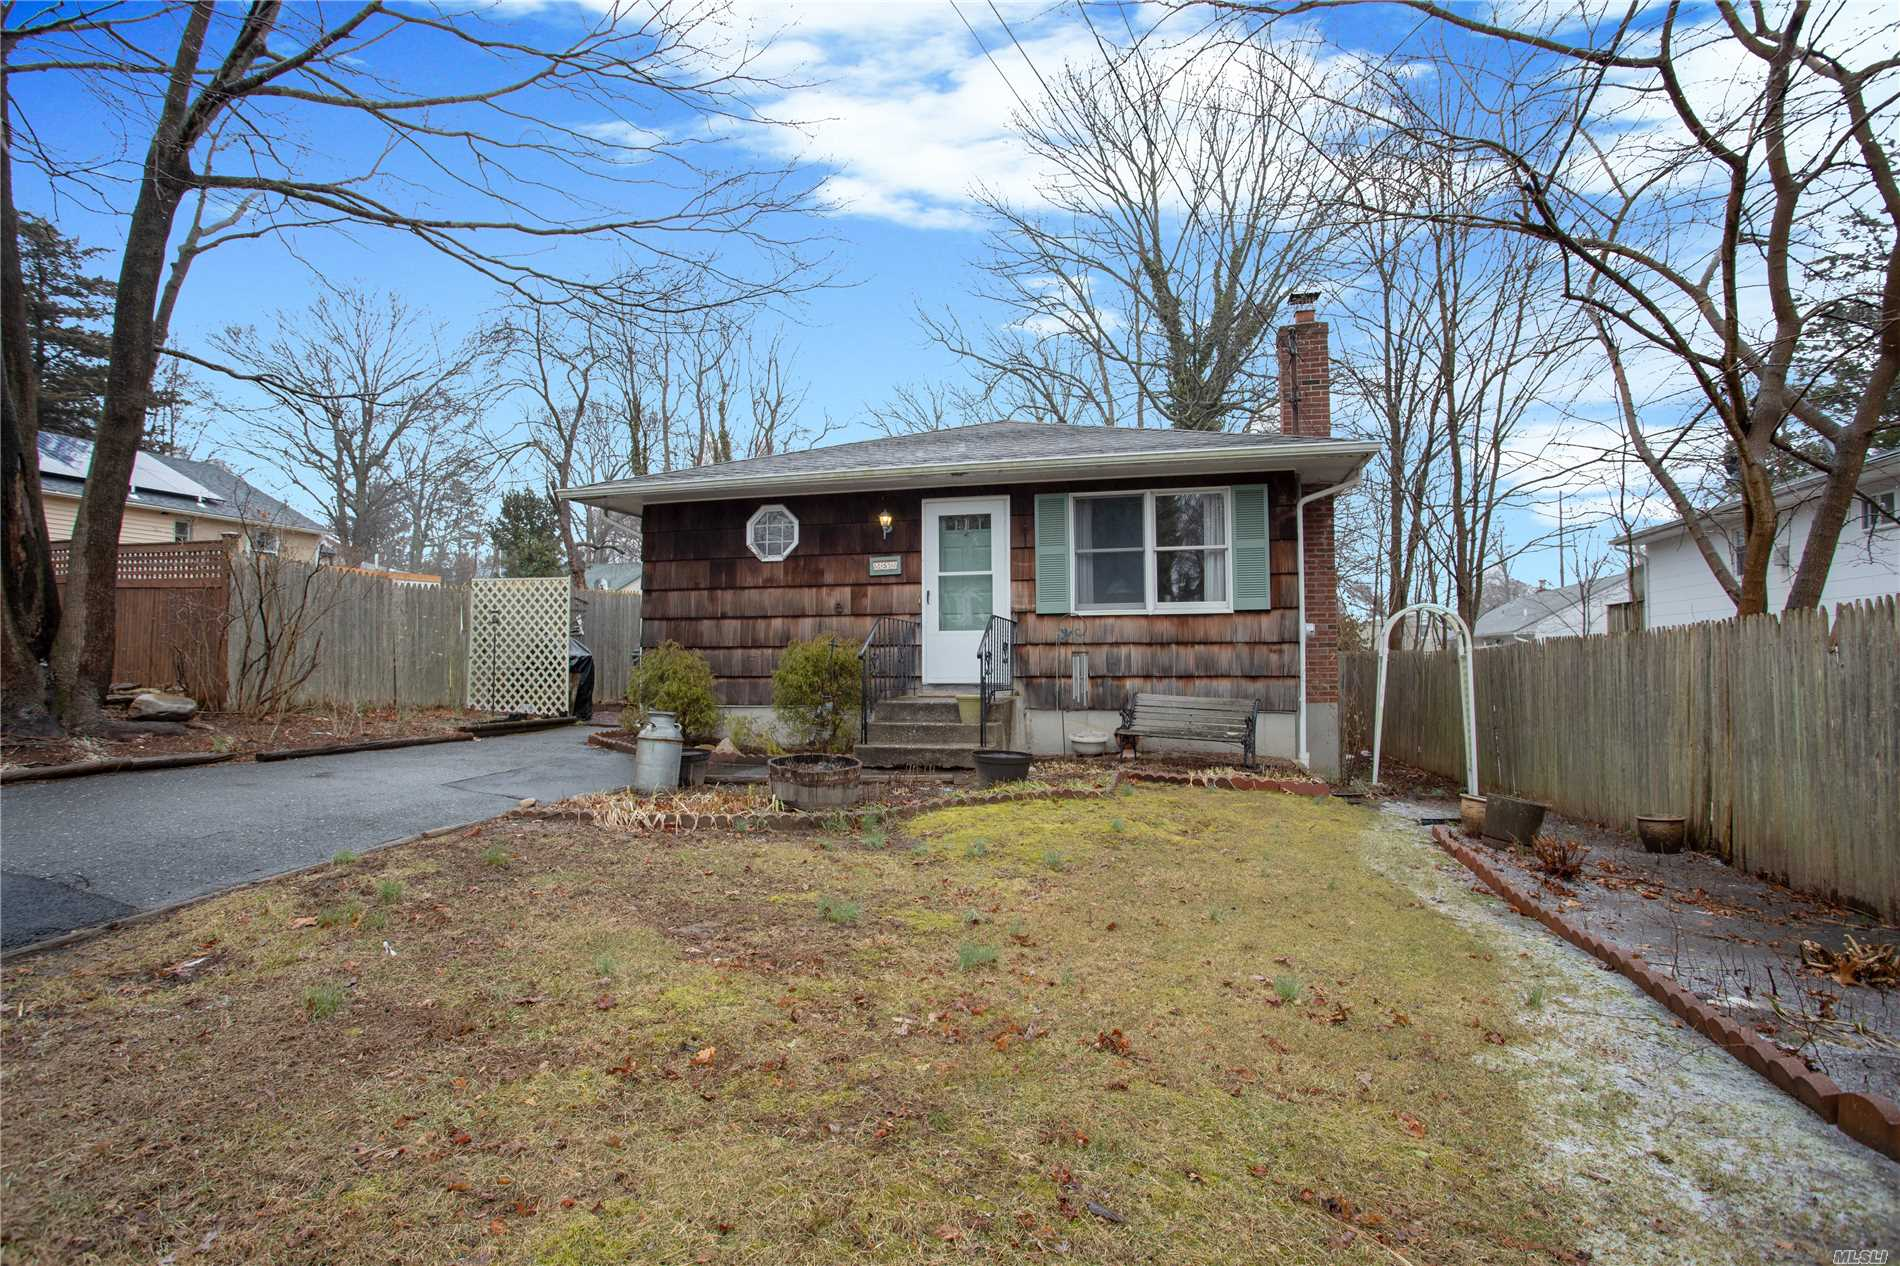 Cute 3 Bedroom 1 Bath Ranch With Hardwood Floors Throughout, Large Eat In Kitchen, Living Room, Full Basement With Egress Windows, Perfect For Finishing! Priced To Sell, This Home Will Not Last!!